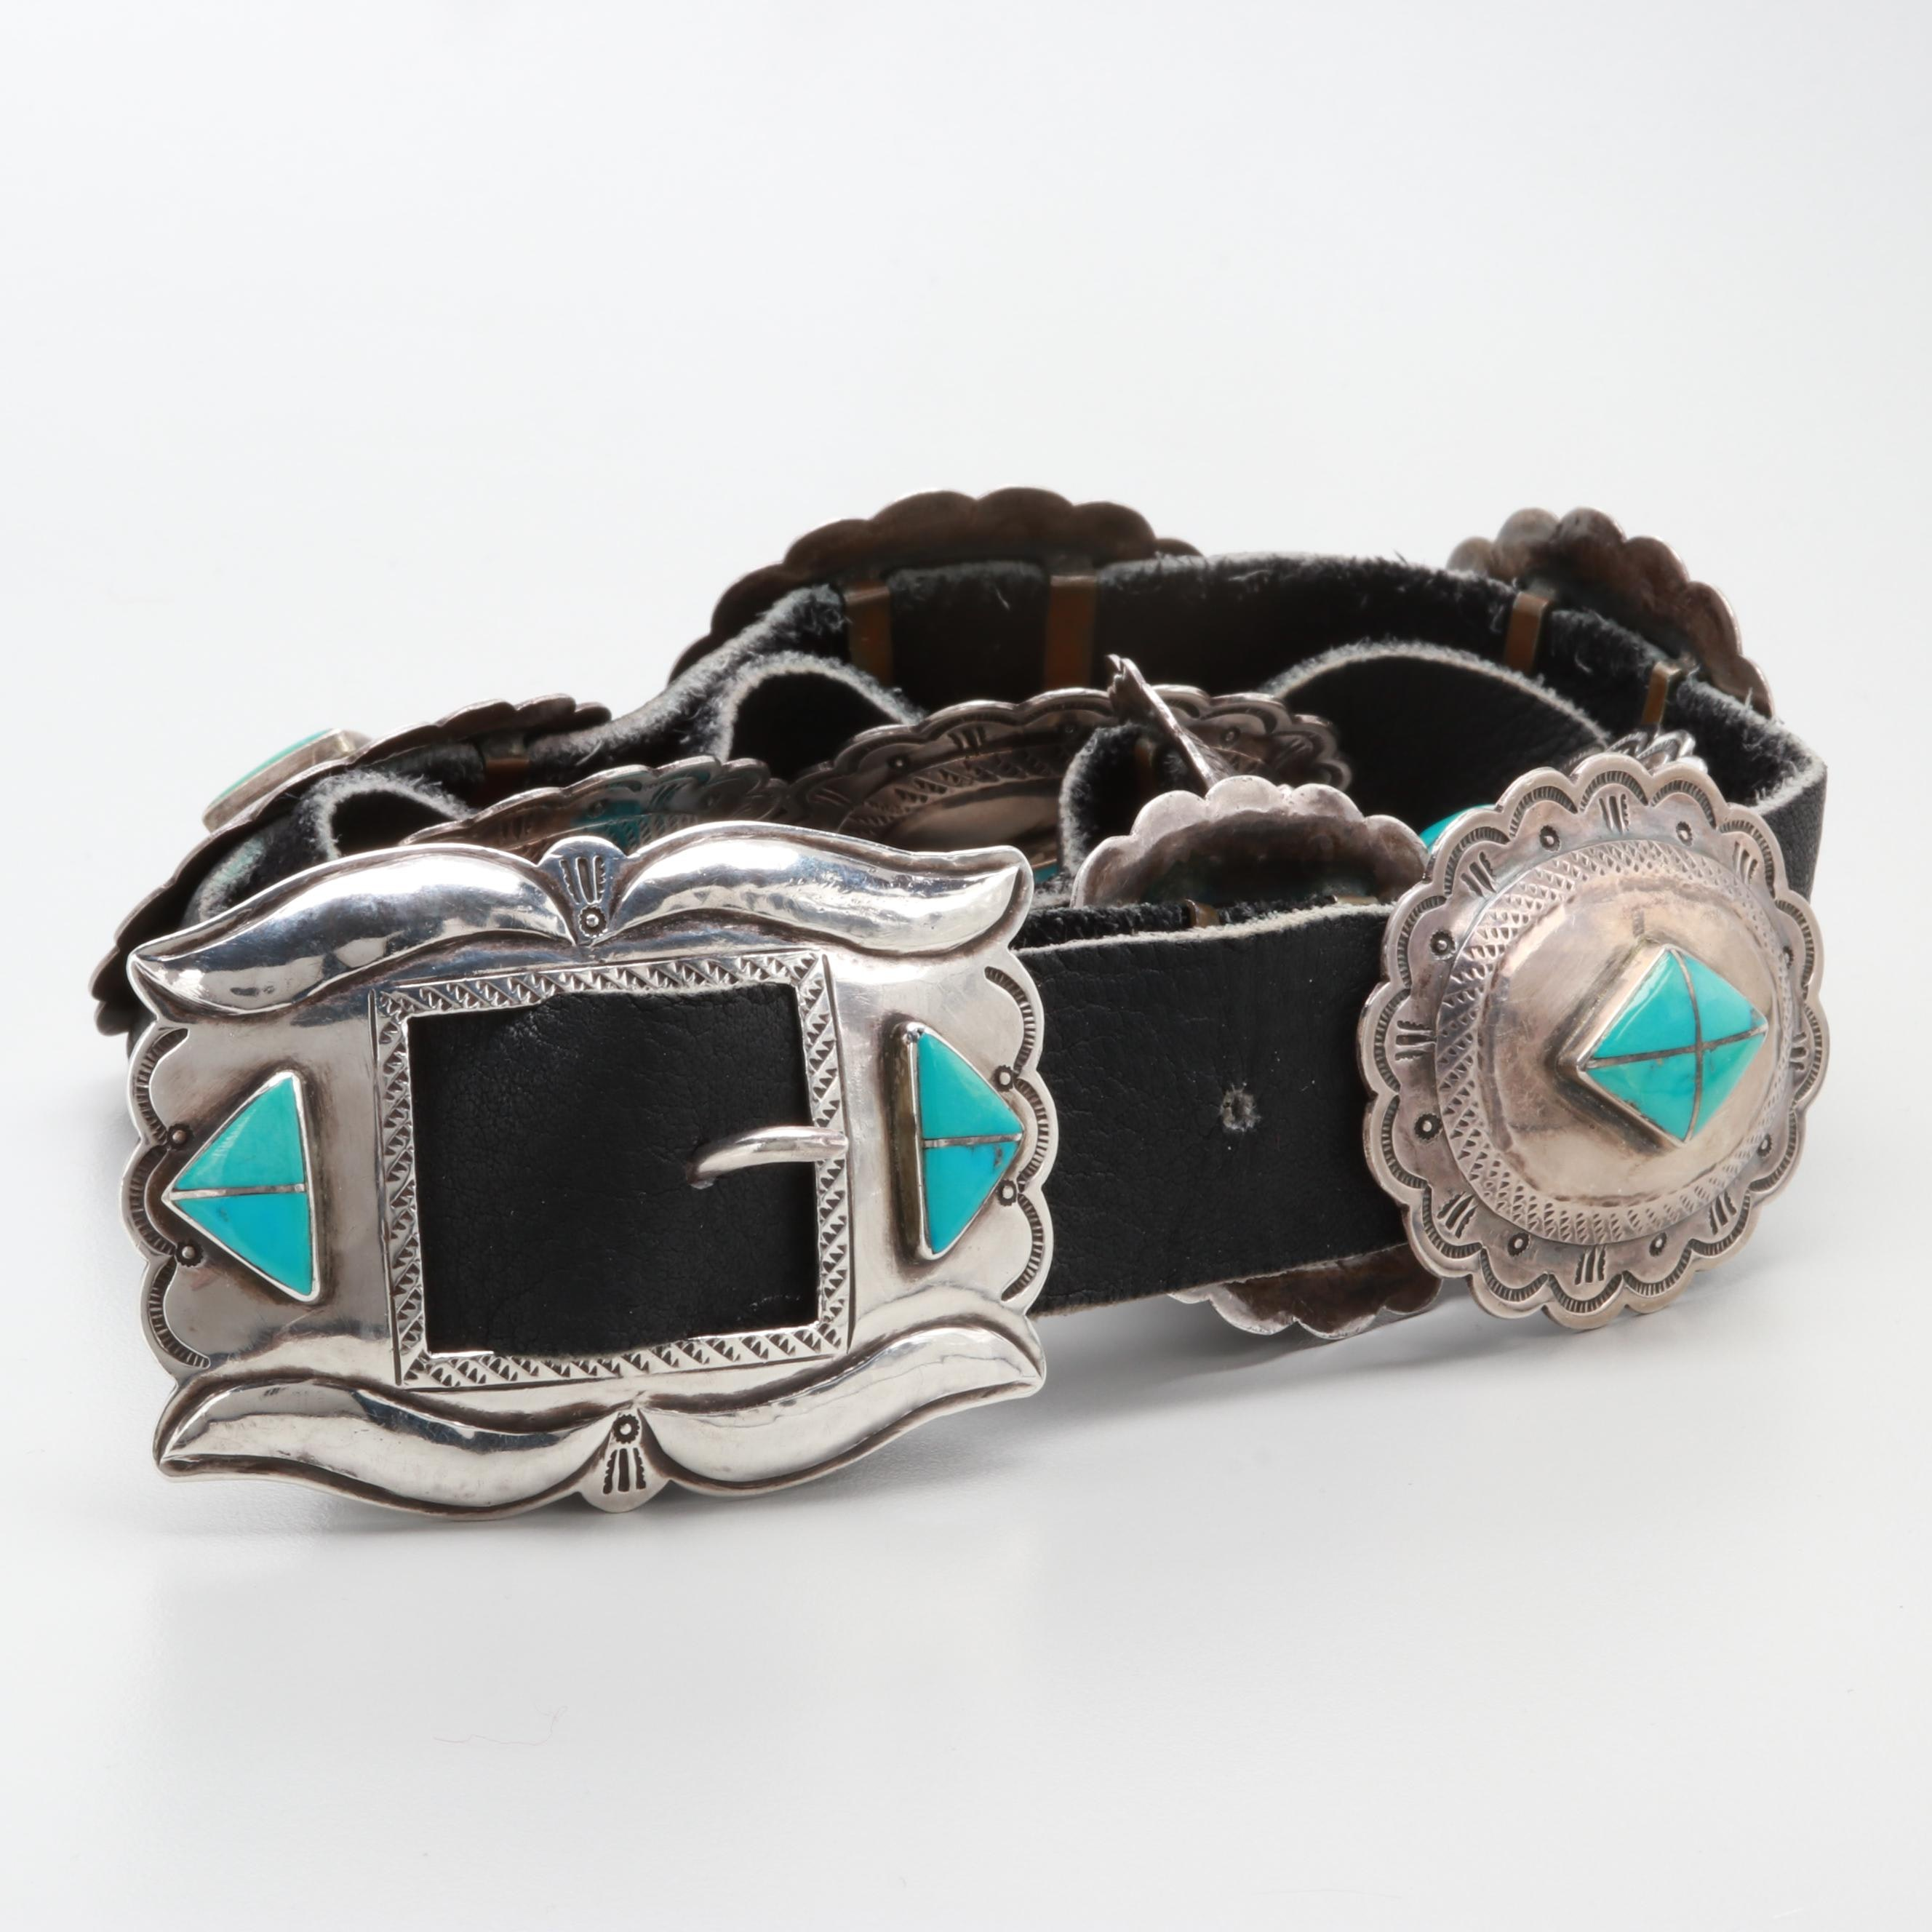 Marie Silver Navajo Diné Sterling Silver Turquoise and Leather Belt